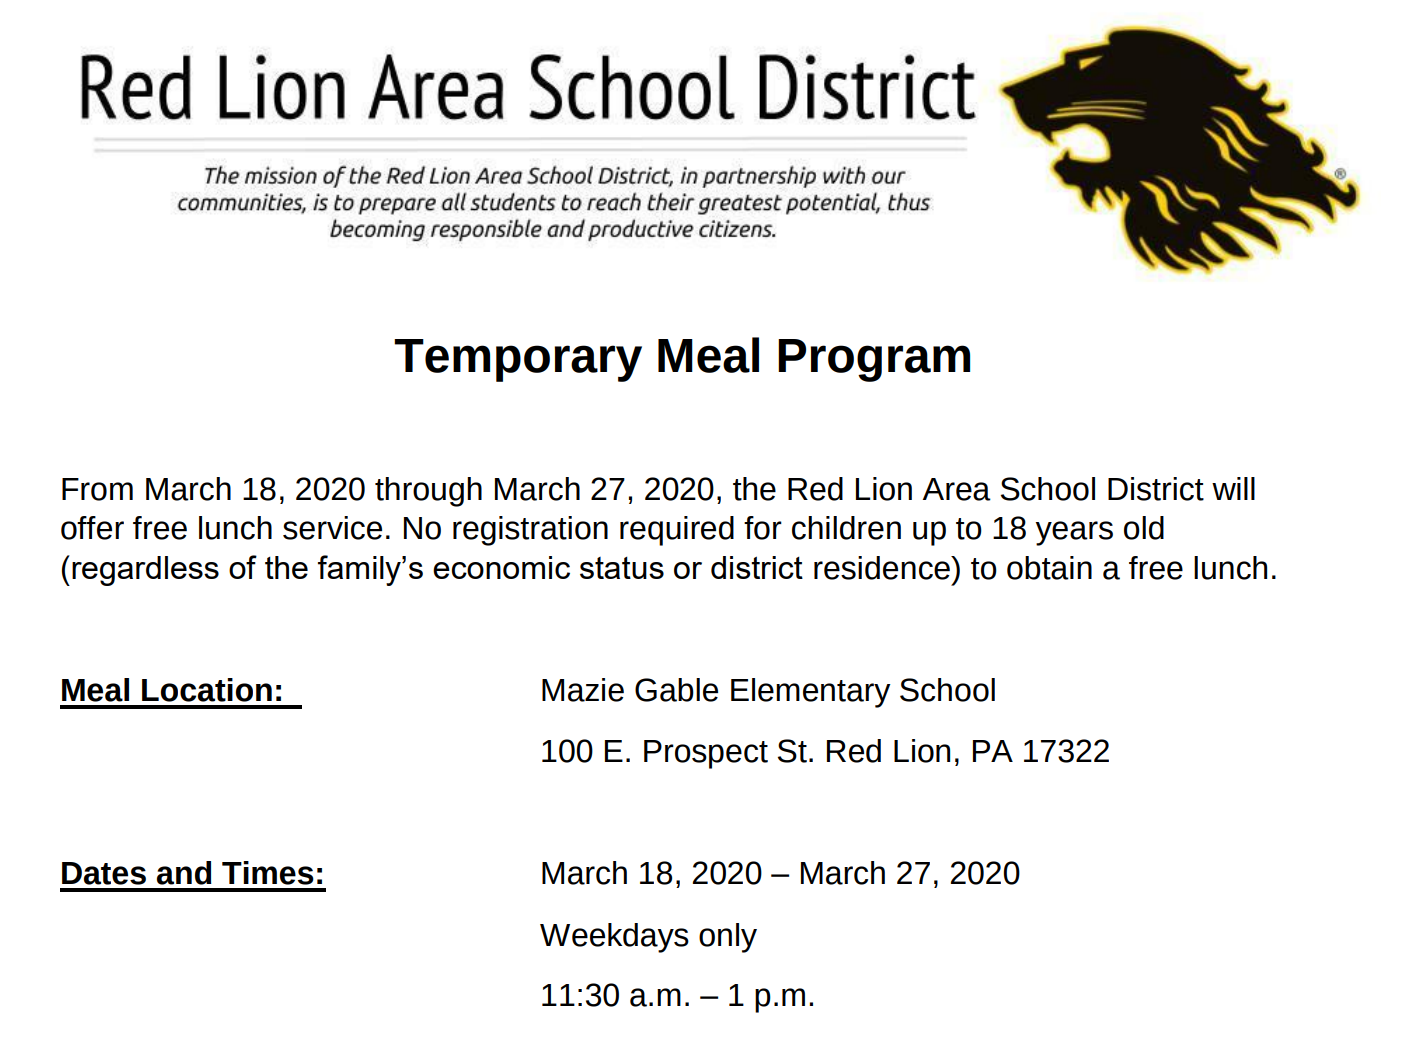 Temporary Meal Program at Mazie Gable Elementary, Red Lion 11:30 am to 1:00 pm March 18 to 27, 2020 (weekdays only)